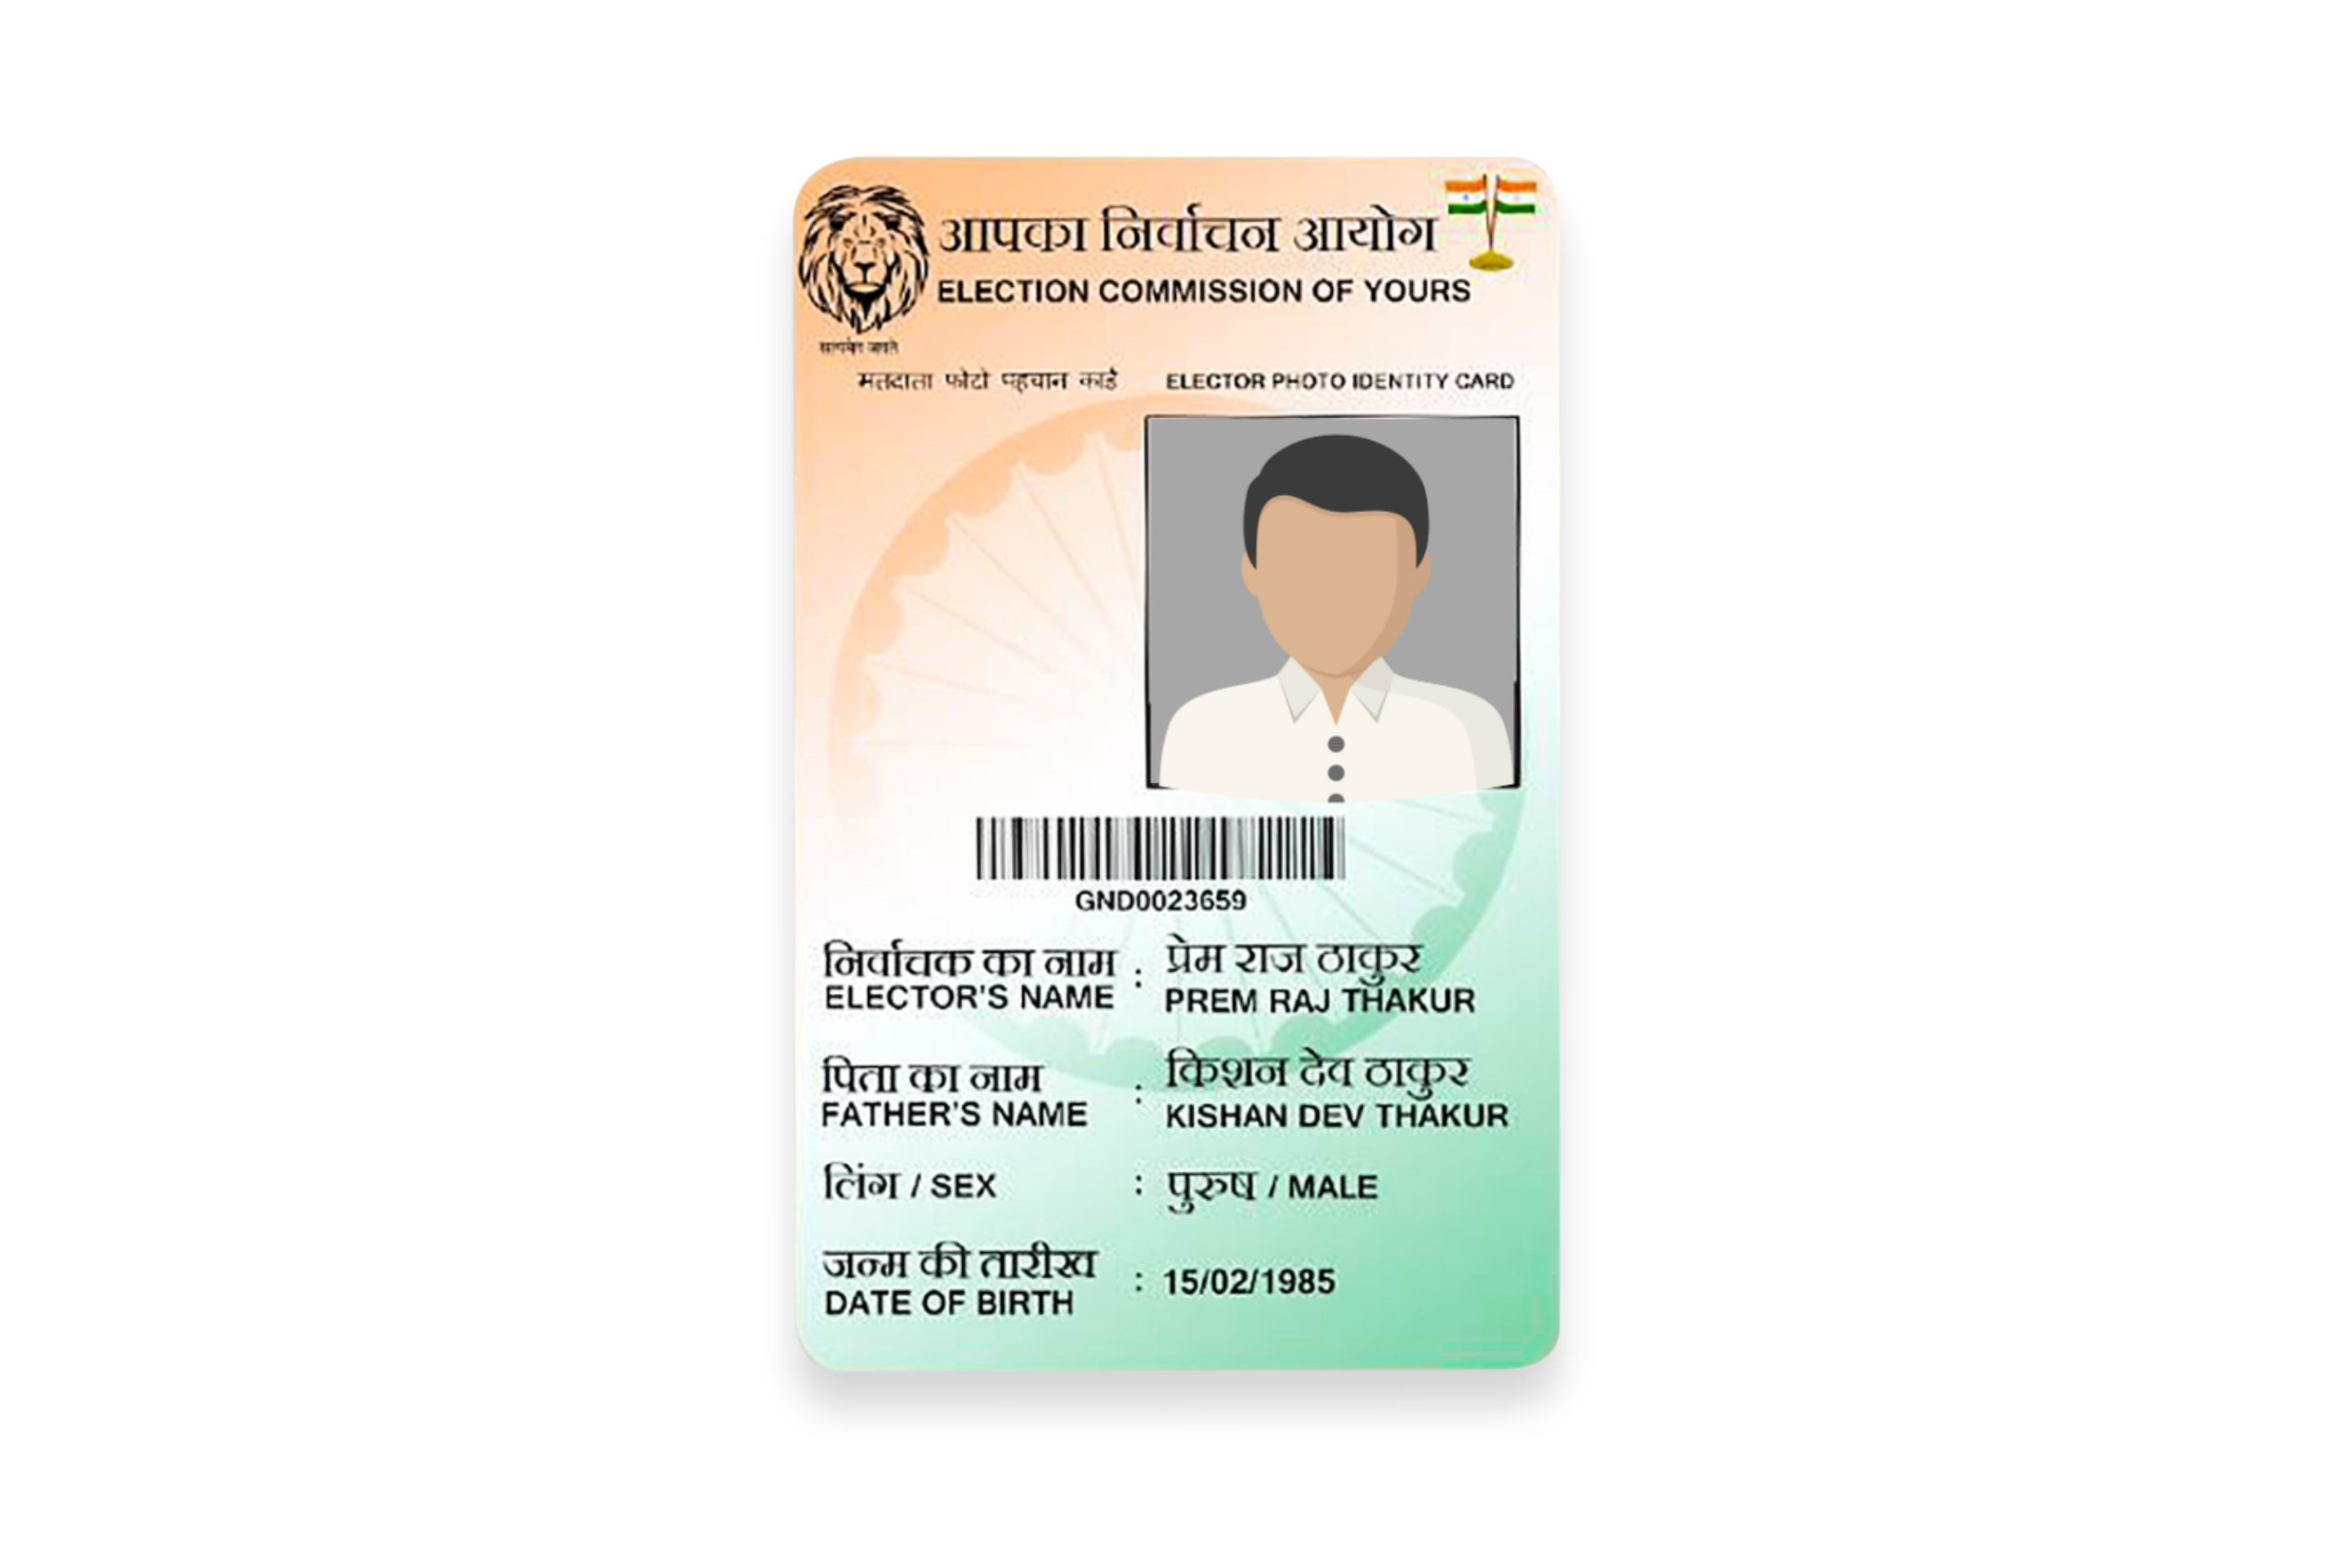 Voter ID Card Verification API